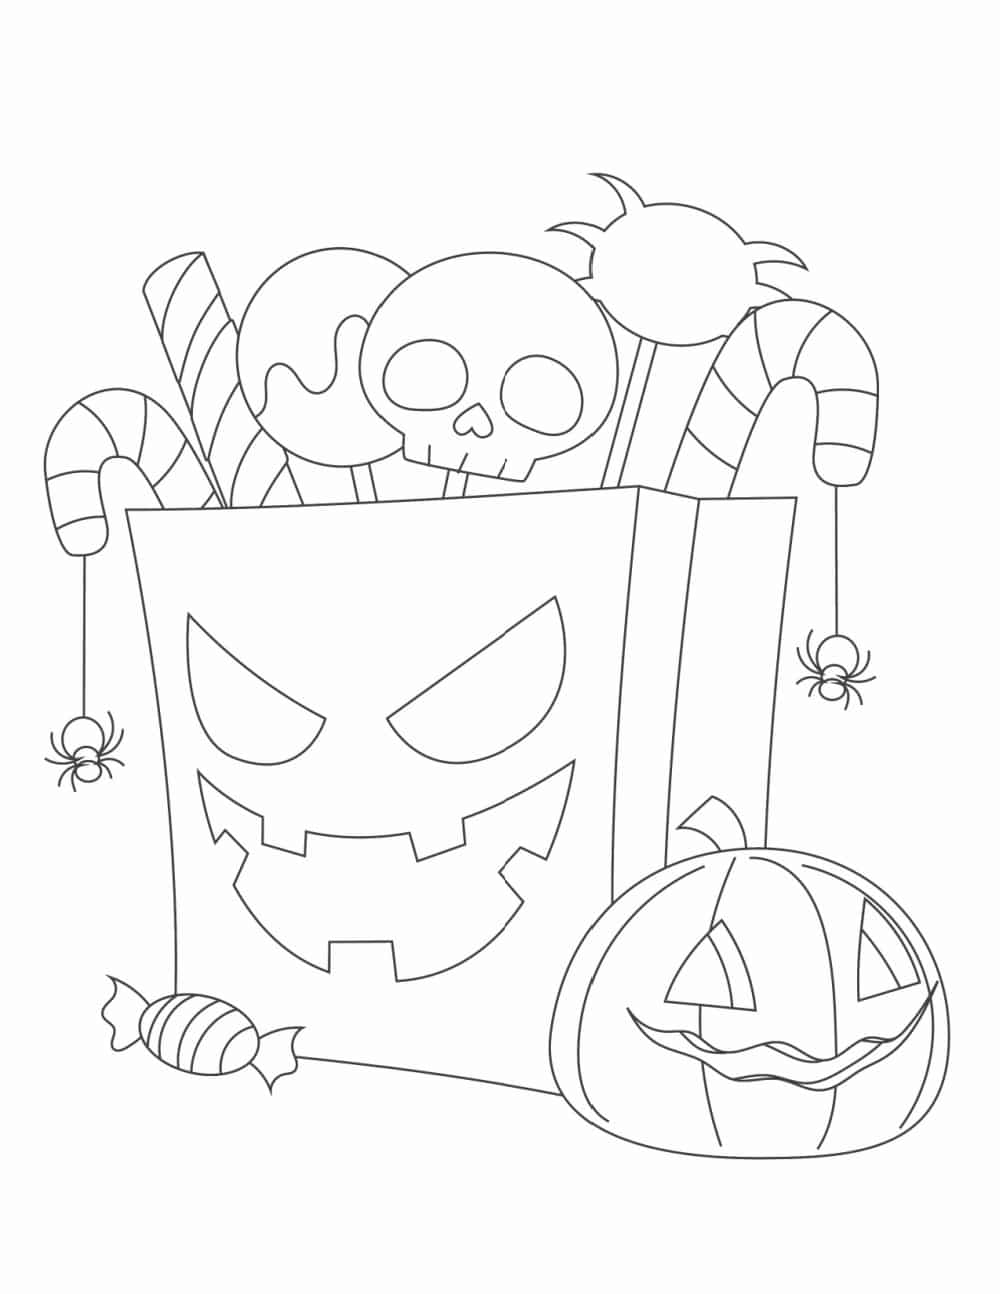 These free printable easy Halloween coloring pages for kids are too scary or detailed which makes them perfect for kids.